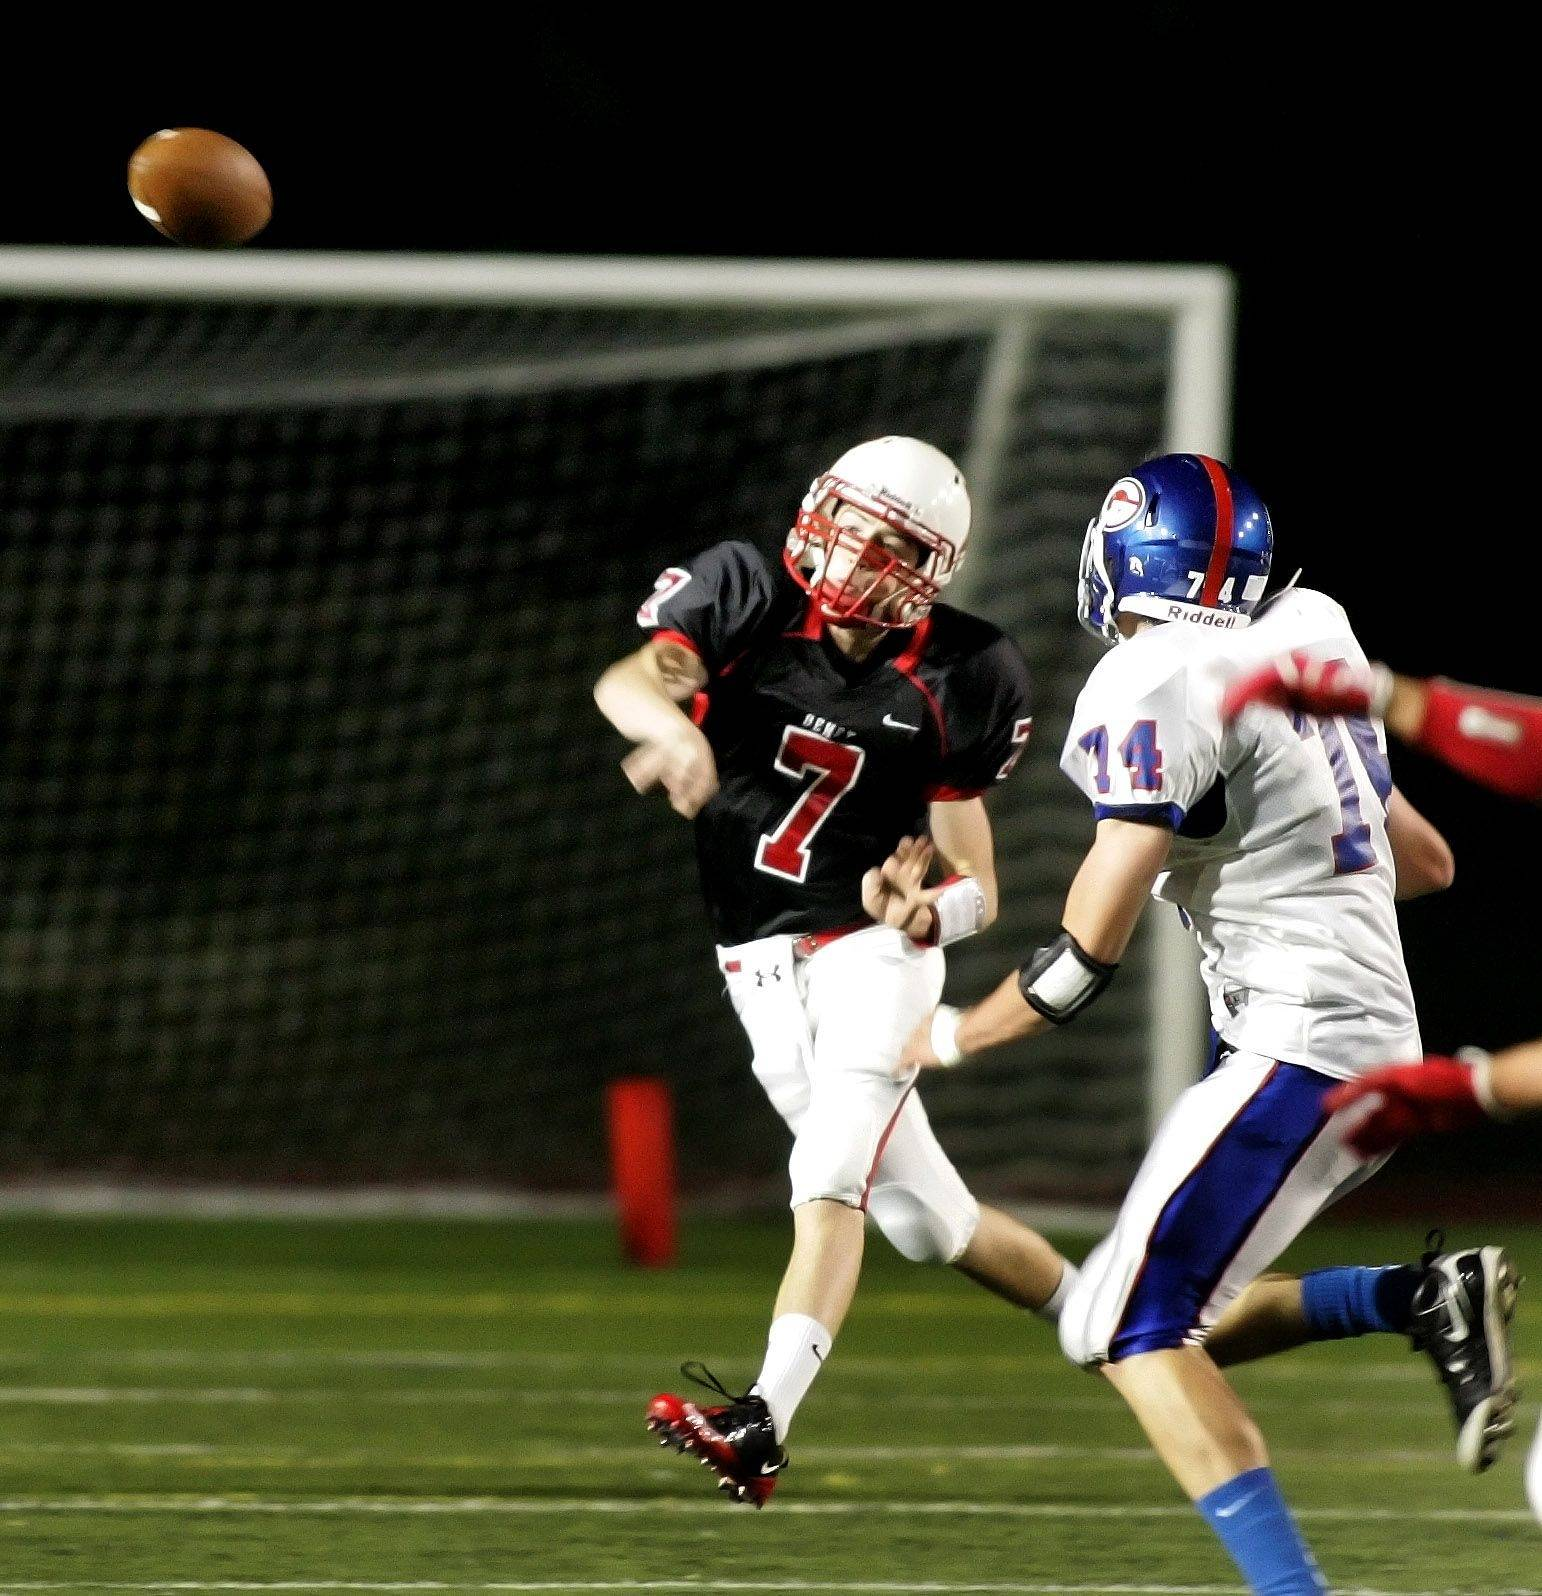 WEEK 5- Quarterback TJ Rickert of Benet passes against Glenbard South.